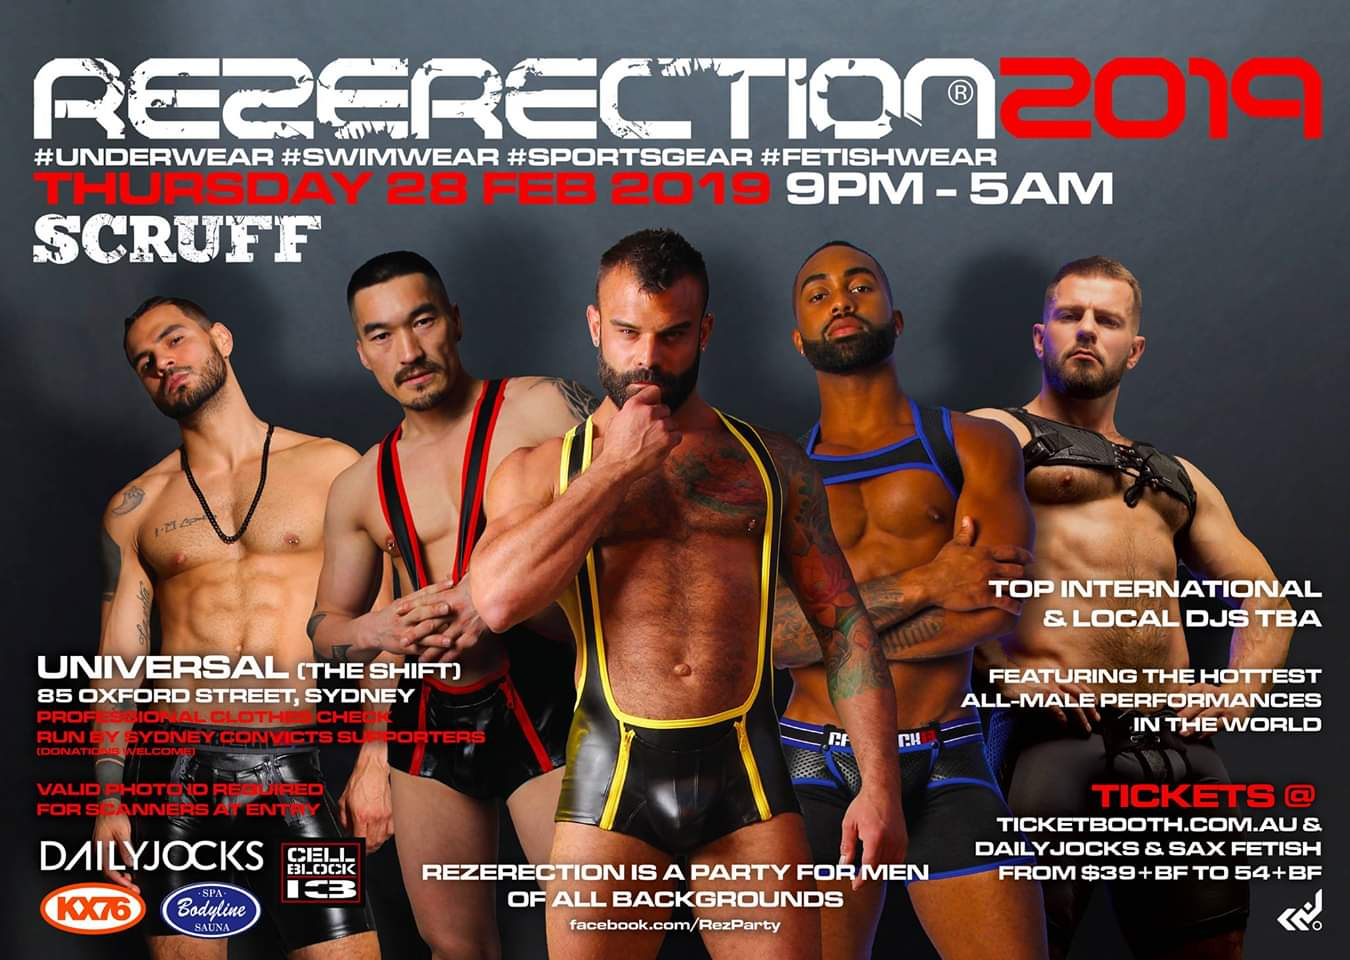 Tickets for REZERECTION 2019 by SCRUFF + link to 2020 party! in Sydney from Ticketbooth